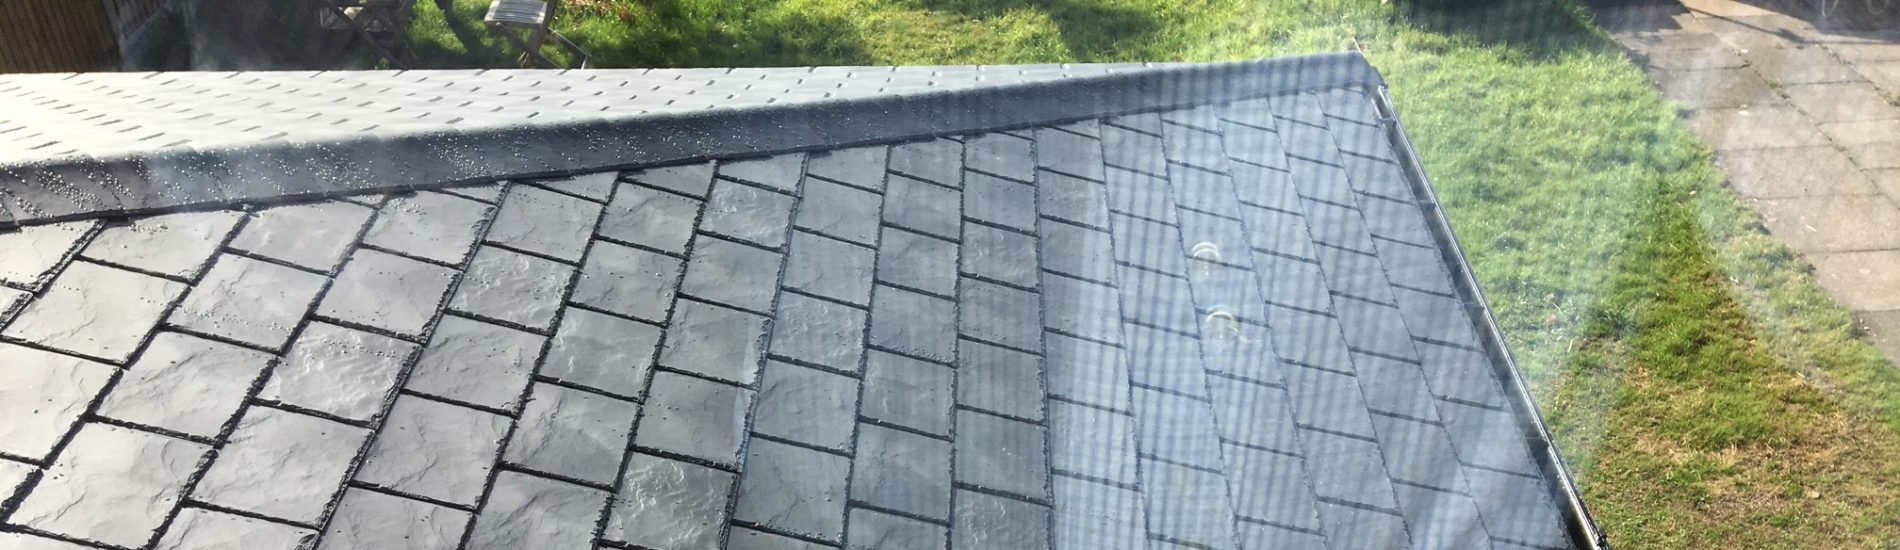 Tiled Conservatory Roof Manchester